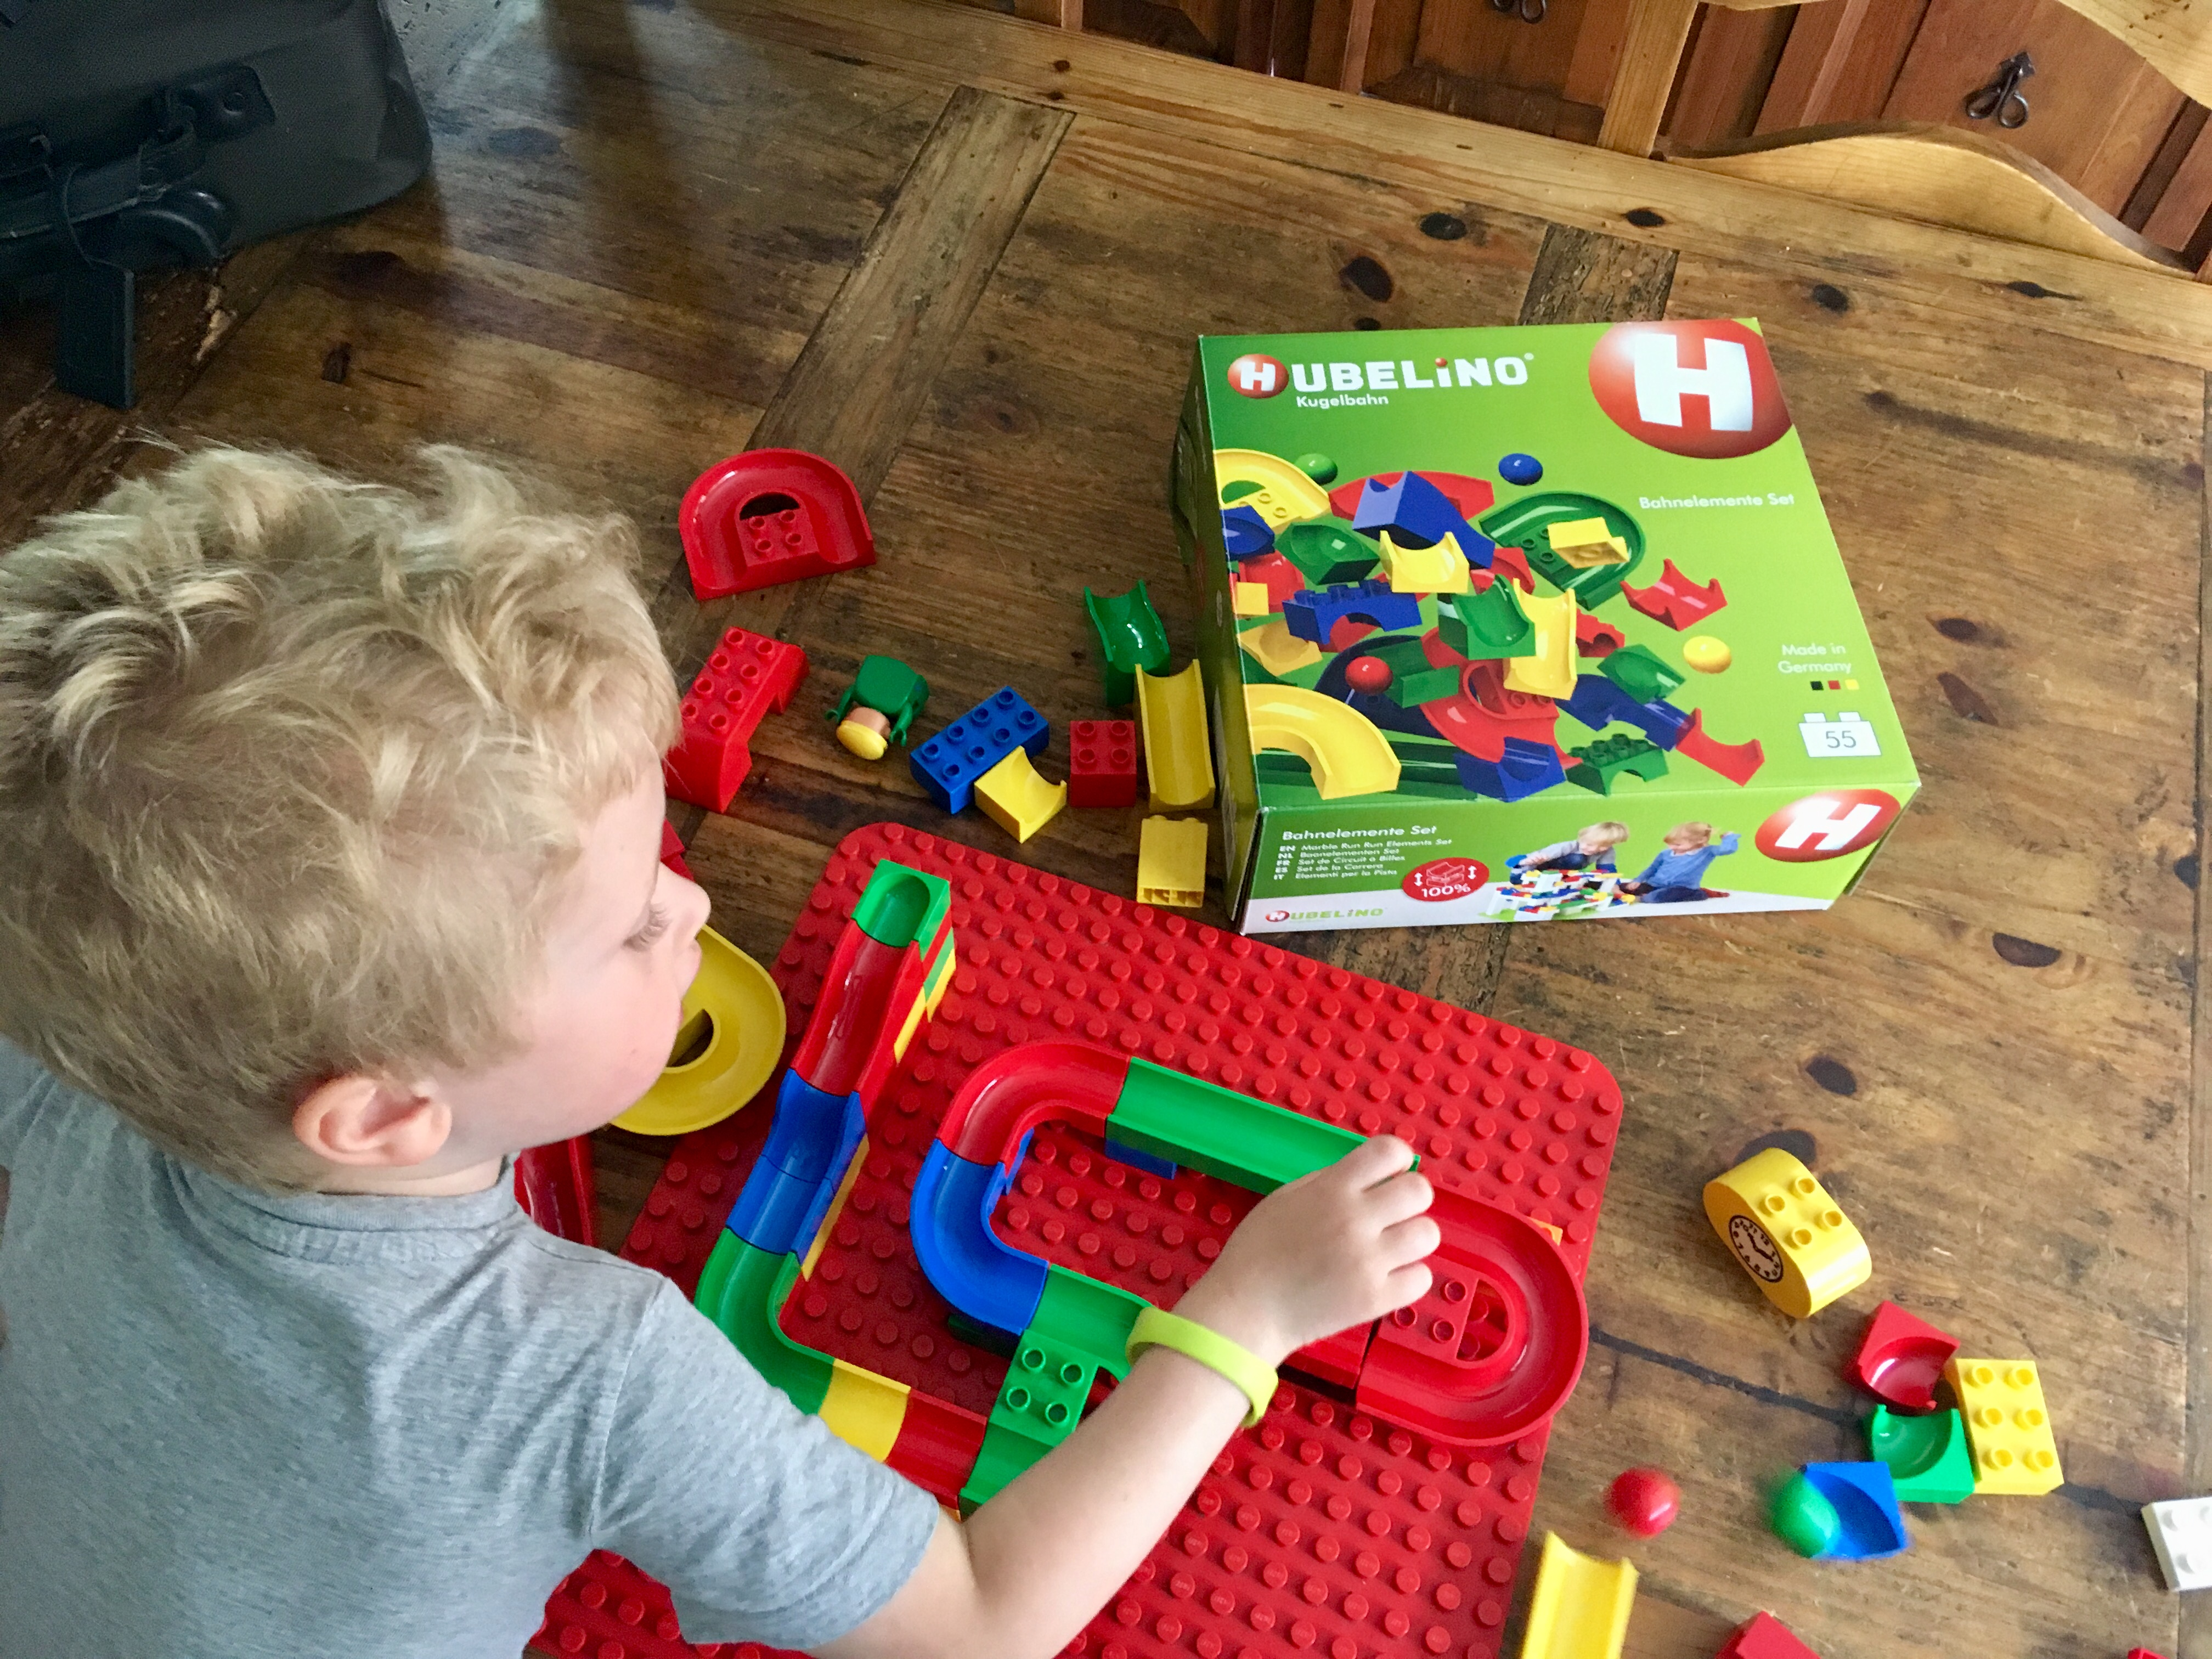 Lucas is playing with the marble run set and duplo